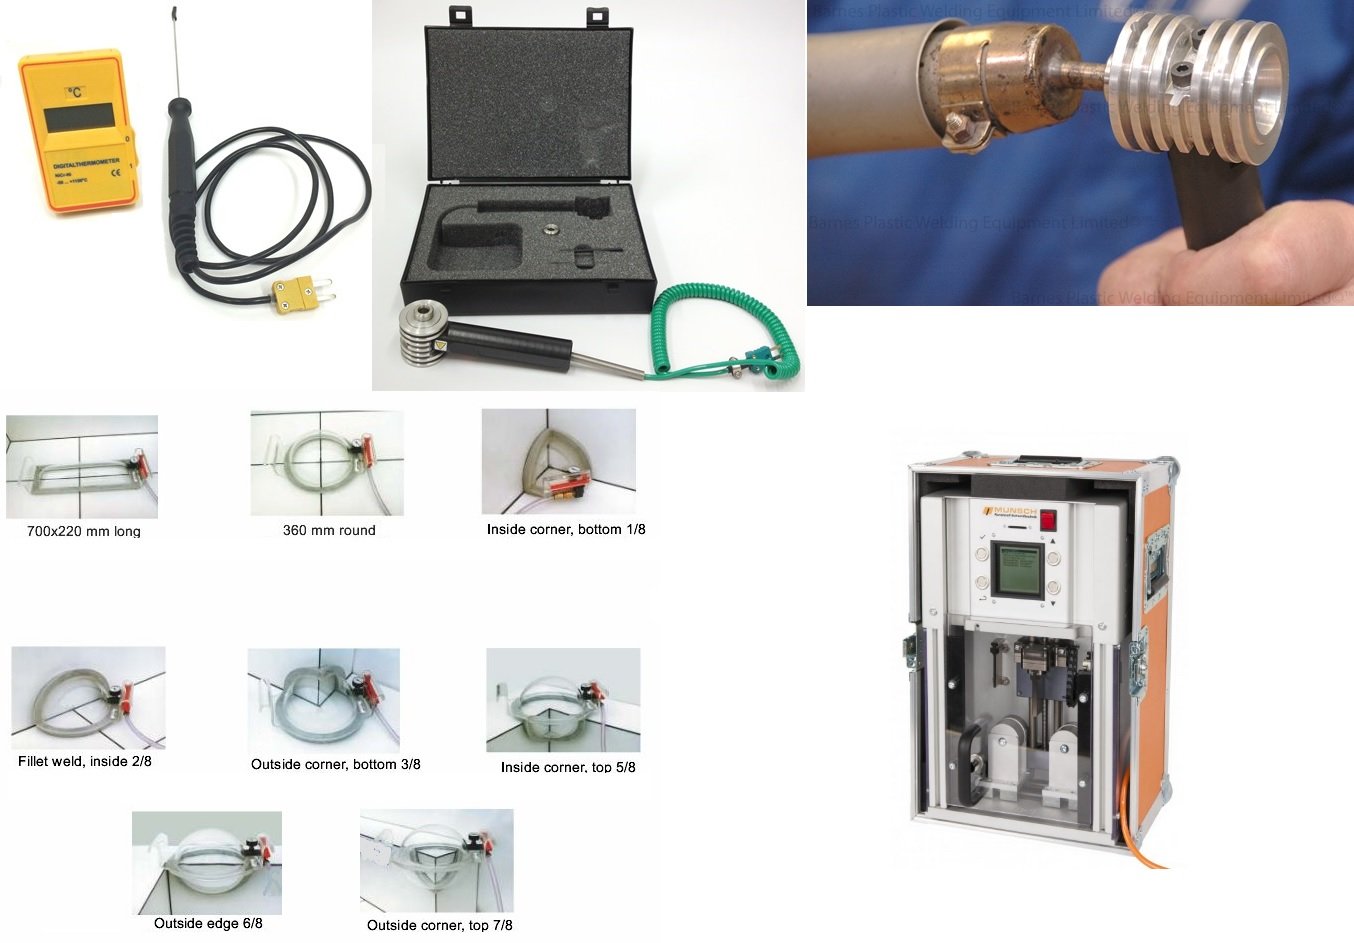 Test Equip - Thermometers - Vacuum Boxes - Bend Testers